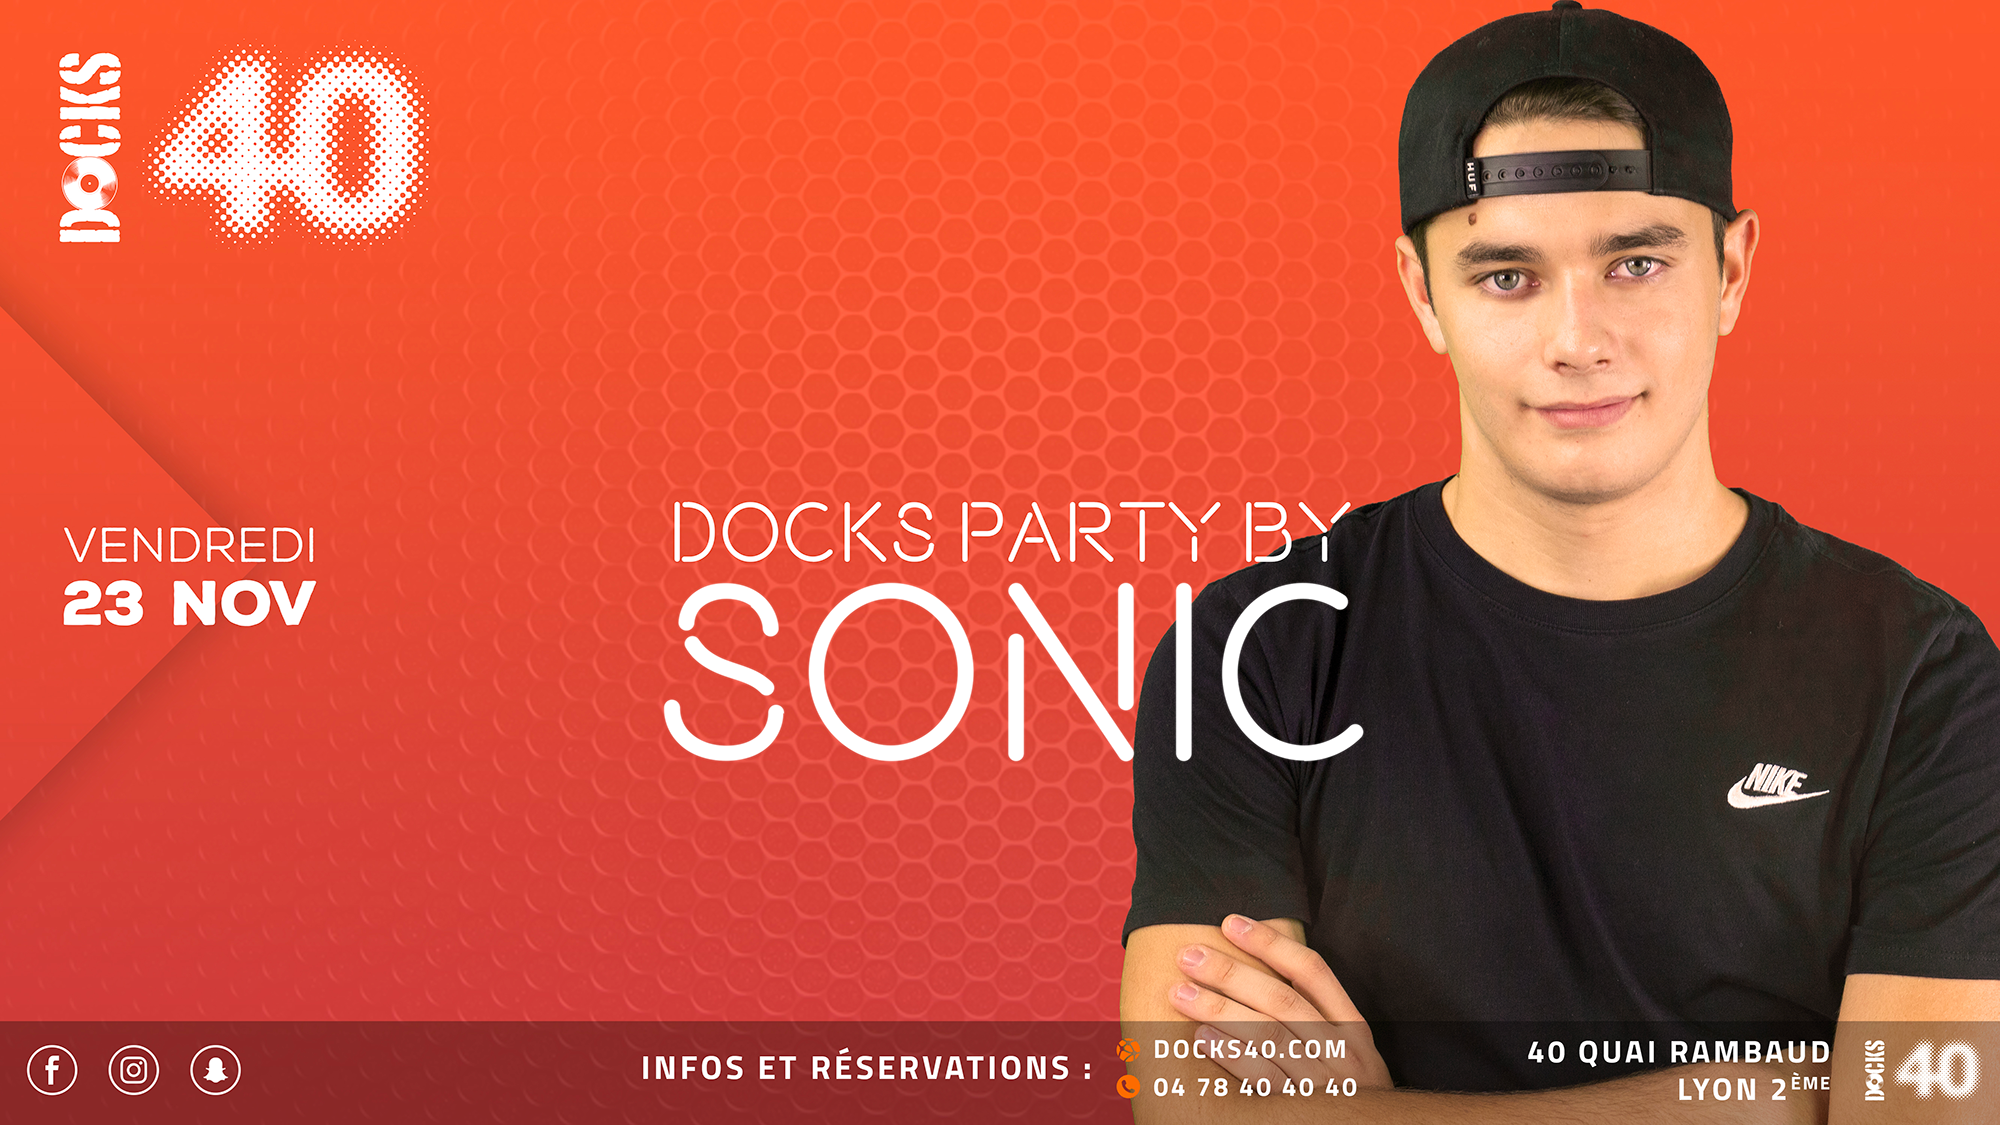 Docks party by SONIC